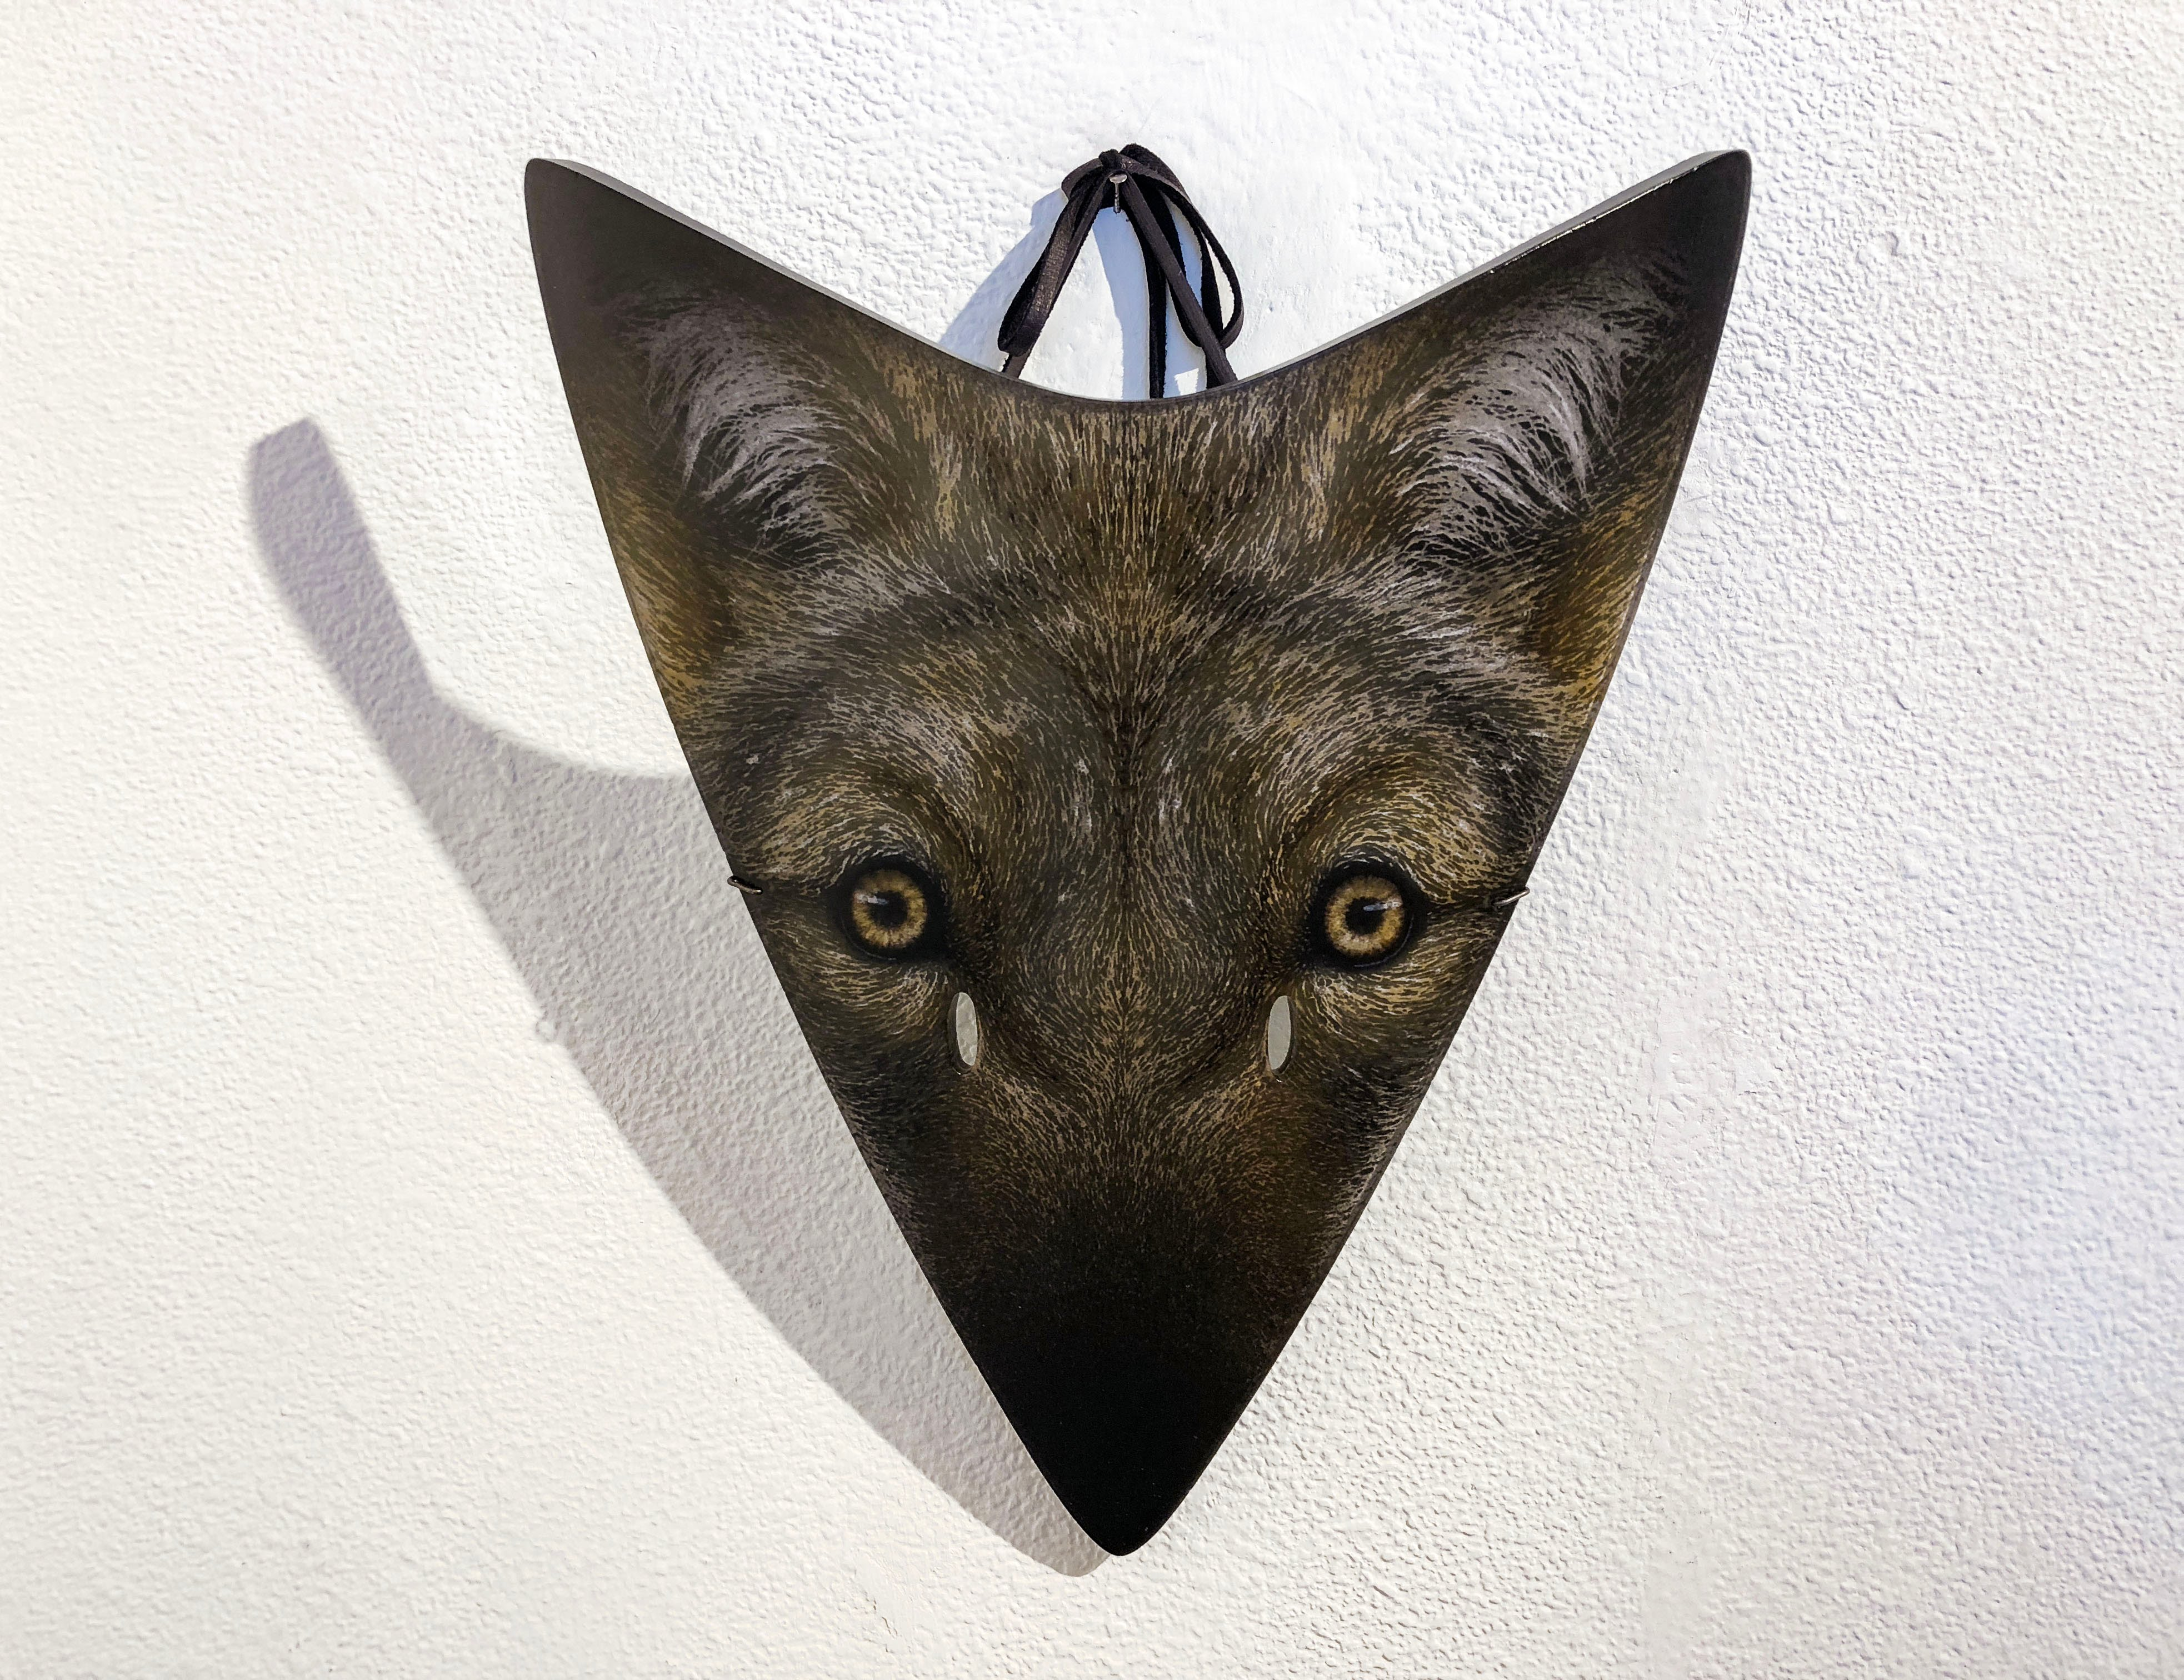 Glass coyote mask by Suzanne Head